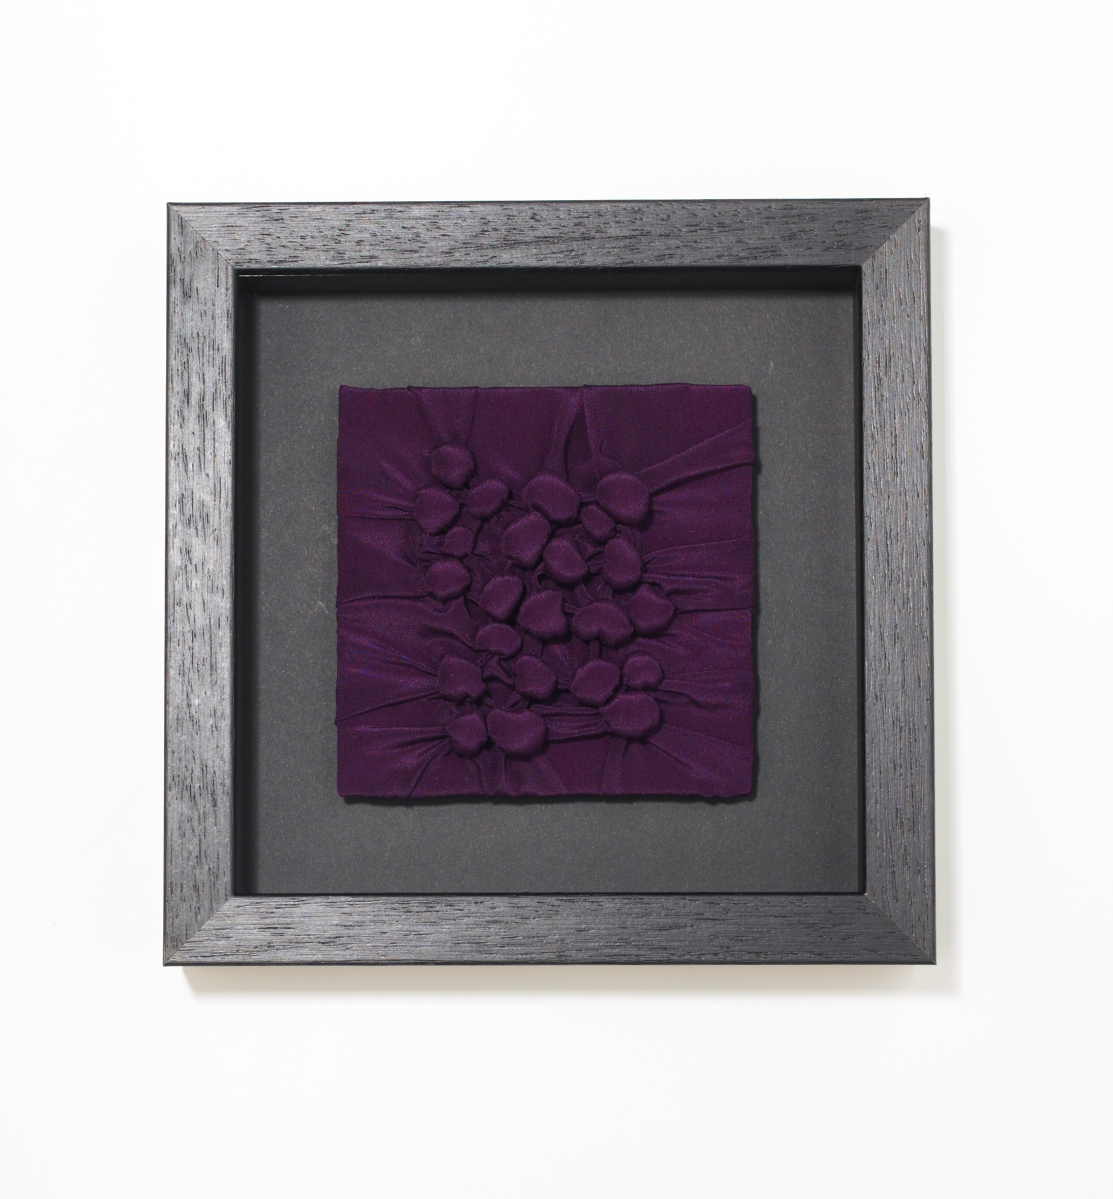 Image of small, framed textile.